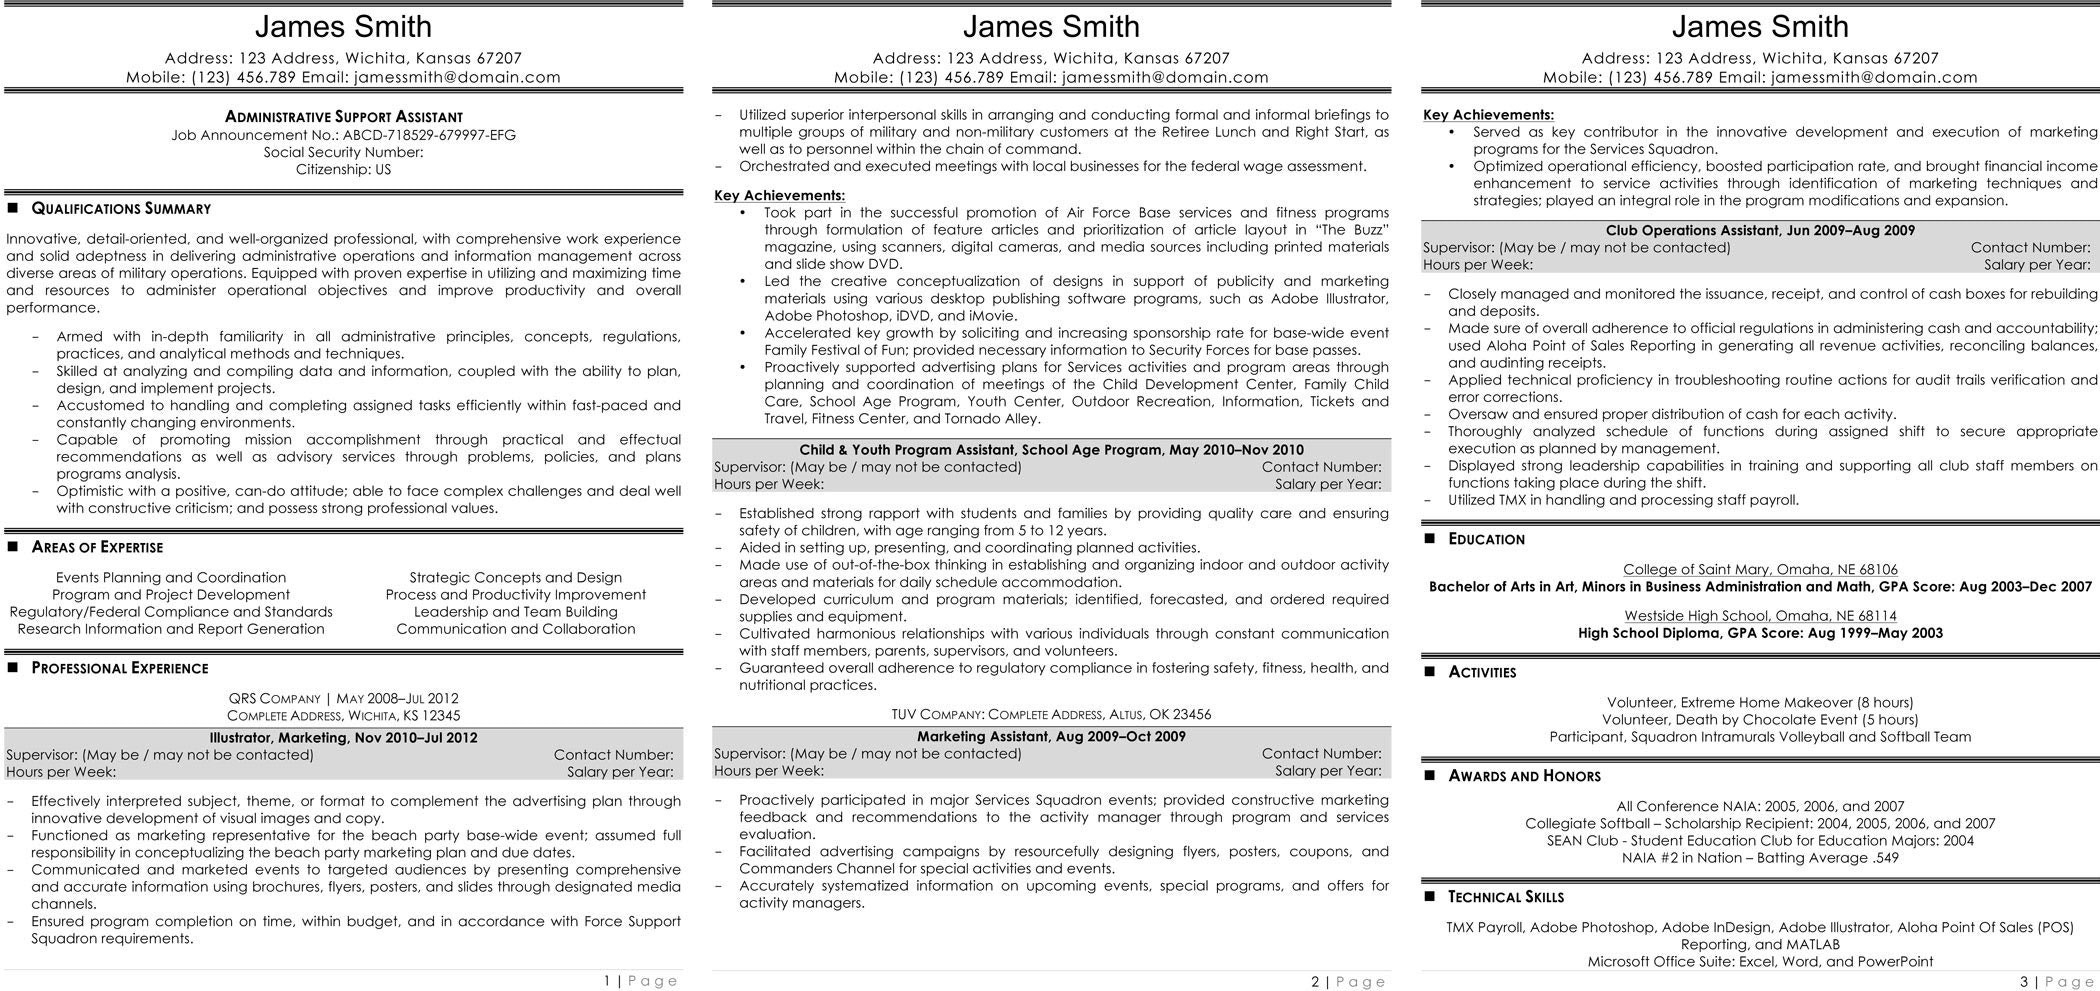 Resume Template for Supervisor Position - Executive assistant Resume Fresh Resume Template Executive assistant